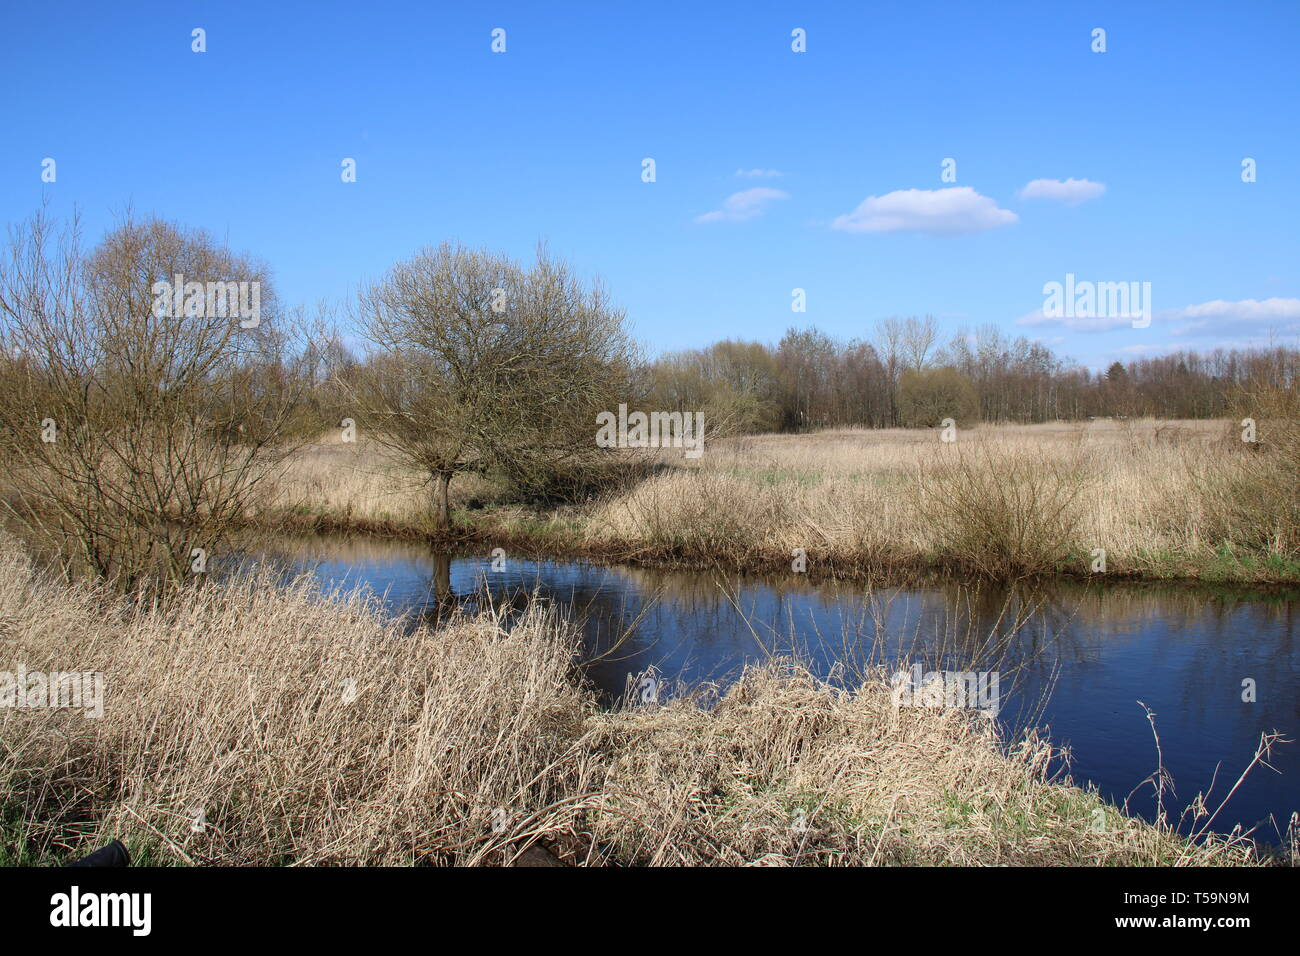 Wald Fluss river forrest Pflanzen - Stock Image